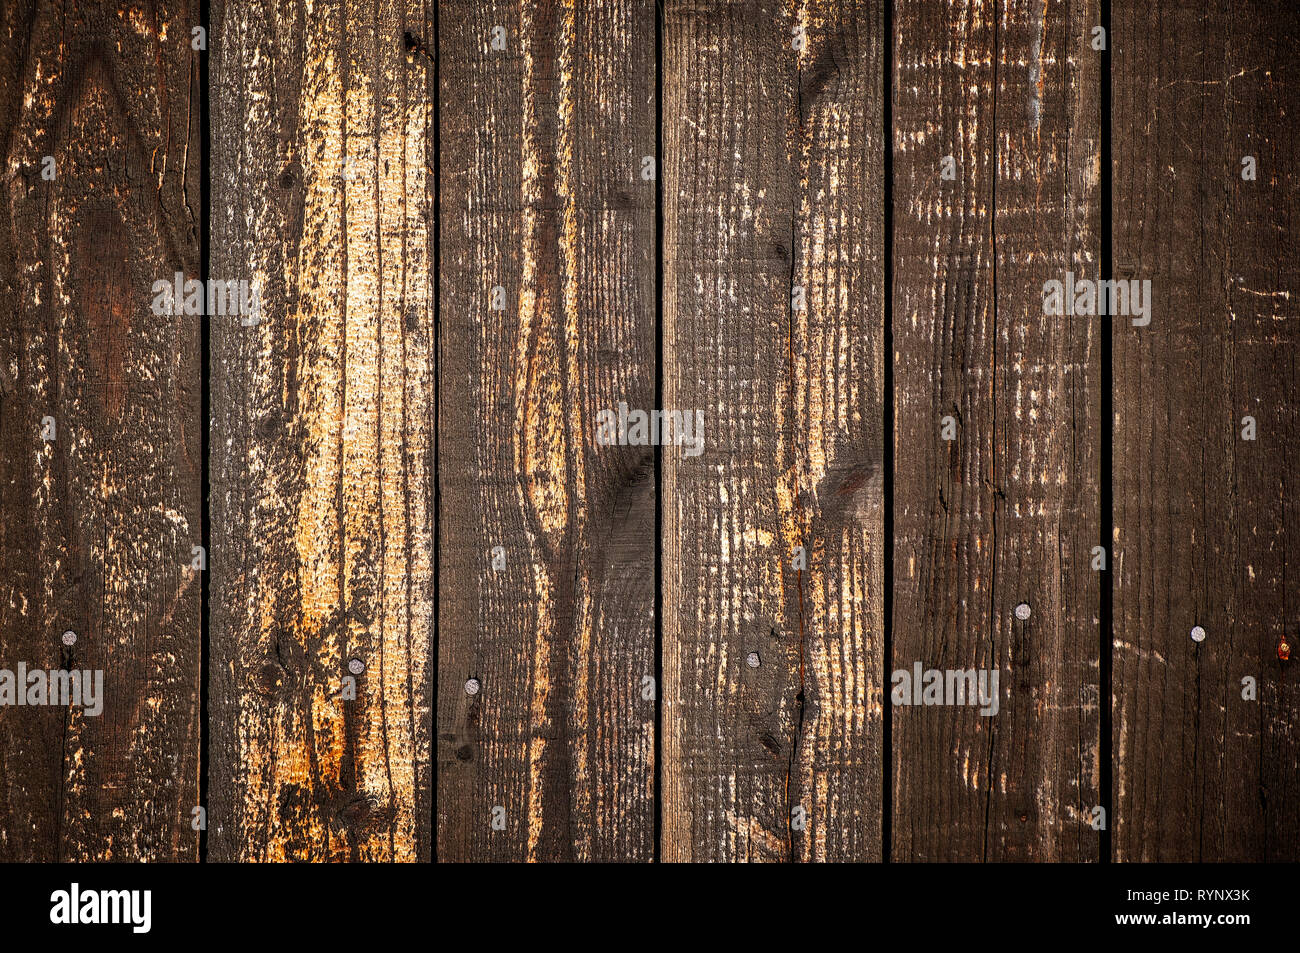 Dark wooden planks wall background striped vertically - Stock Image